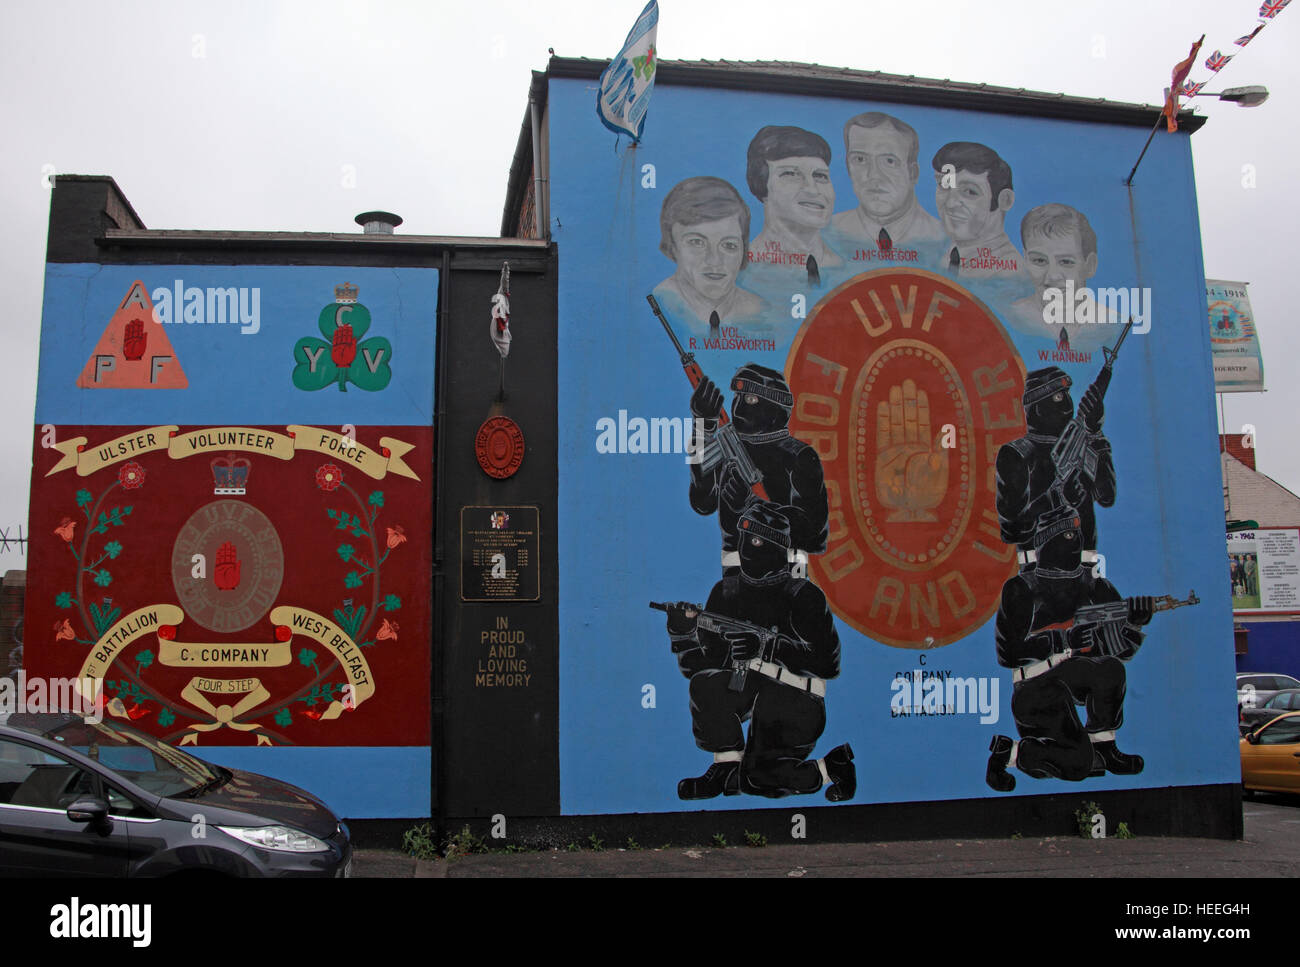 Mural,art,British,Union,wall,walls,gable end,gable,end,Northern,Irish,Republican,violence,para,military,paramilitary,fallen,Martyrs,martyr,street,rd,road,painting,painted,symbolism,Loyalist,culture,history,community,C-Company,1st Battalion Wadsworth,McIntyre,McGregor,Chapman,Hannah,GoTonySmith,@HotpixUK,Tony,Smith,UK,GB,Great,Britain,United,Kingdom,Irish,British,Ireland,problem,with,problem with,issue with,NI,Northern,Northern Ireland,Belfast,City,Centre,Art,Artists,the,troubles,The Troubles,Good Friday Agreement,Peace,honour,painting,wall,walls,tribute,republicanism,Fight,Justice,West,Beal,feirste,martyrs,social,tour,tourism,tourists,urban,six,counties,6,backdrop,county,Antrim,Belfast streets,Buy Pictures of,Buy Images Of,Images of,Stock Images,Tony Smith,United Kingdom,Great Britain,British Isles